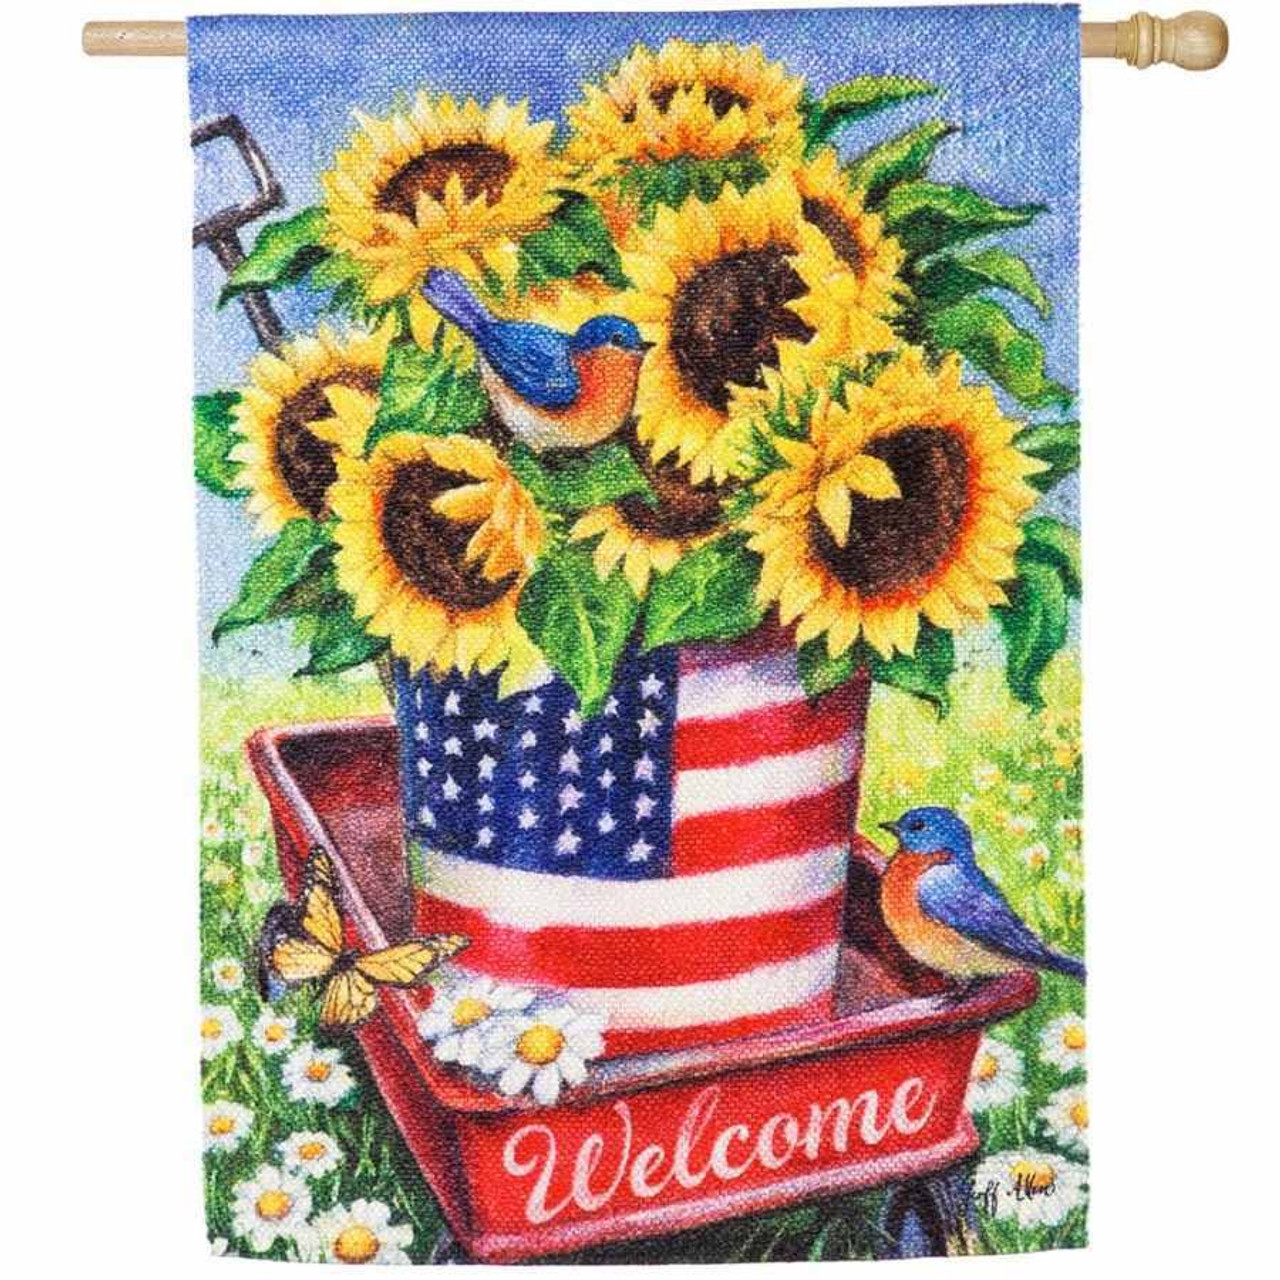 A house flag with a red wagon holding a bucket painted with the American flag. Inside the bucket is sunflowers.